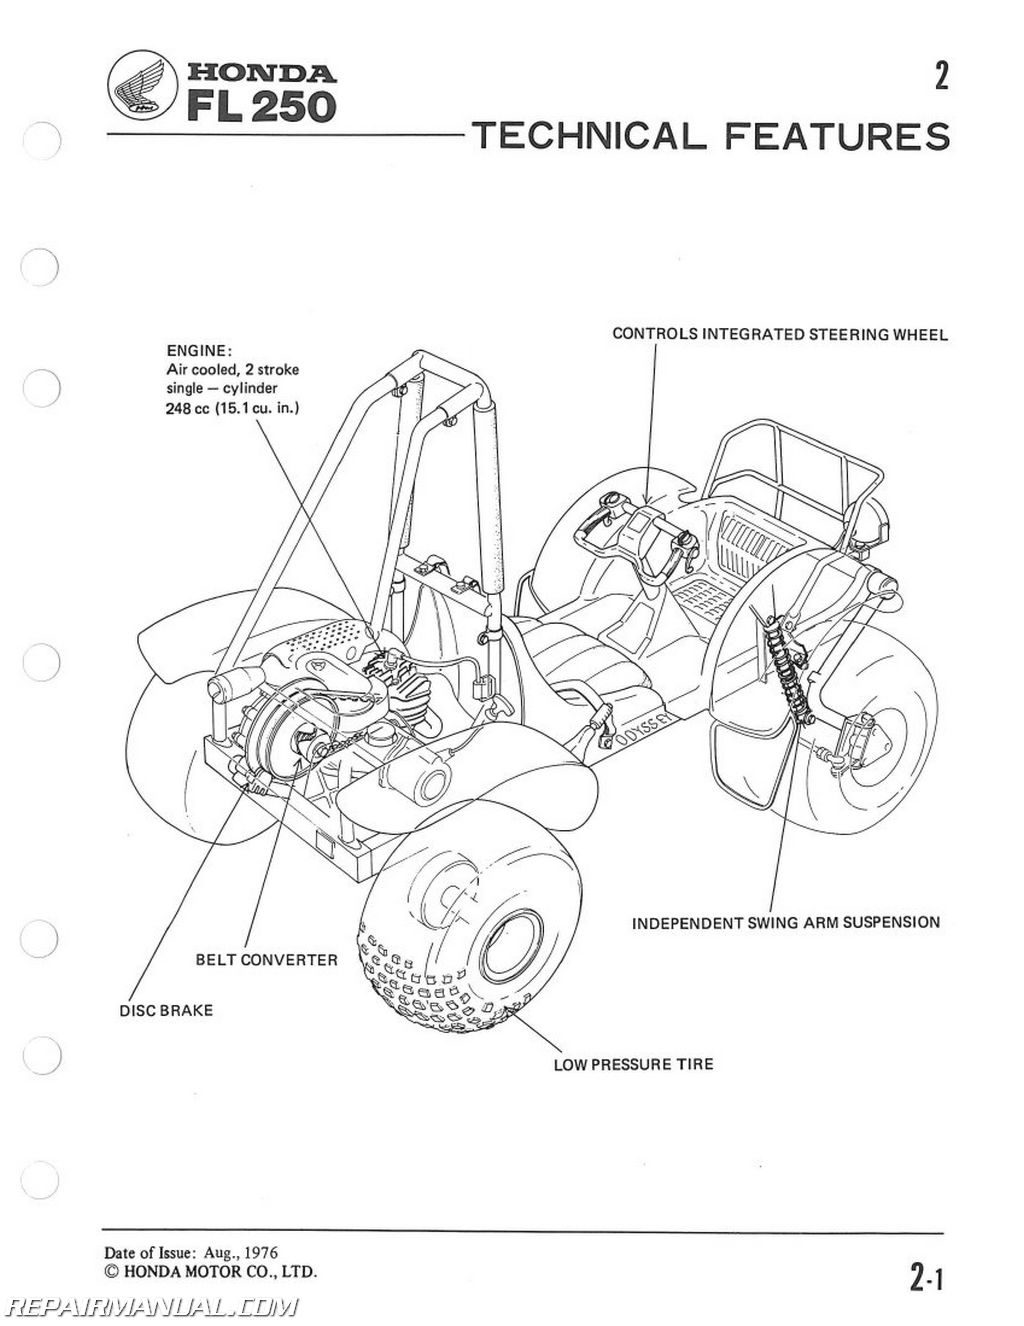 1977 Honda Odyssey Wiring Diagram Opinions About 1999 Shadow 1984 Fl250 Service Manual Stereo